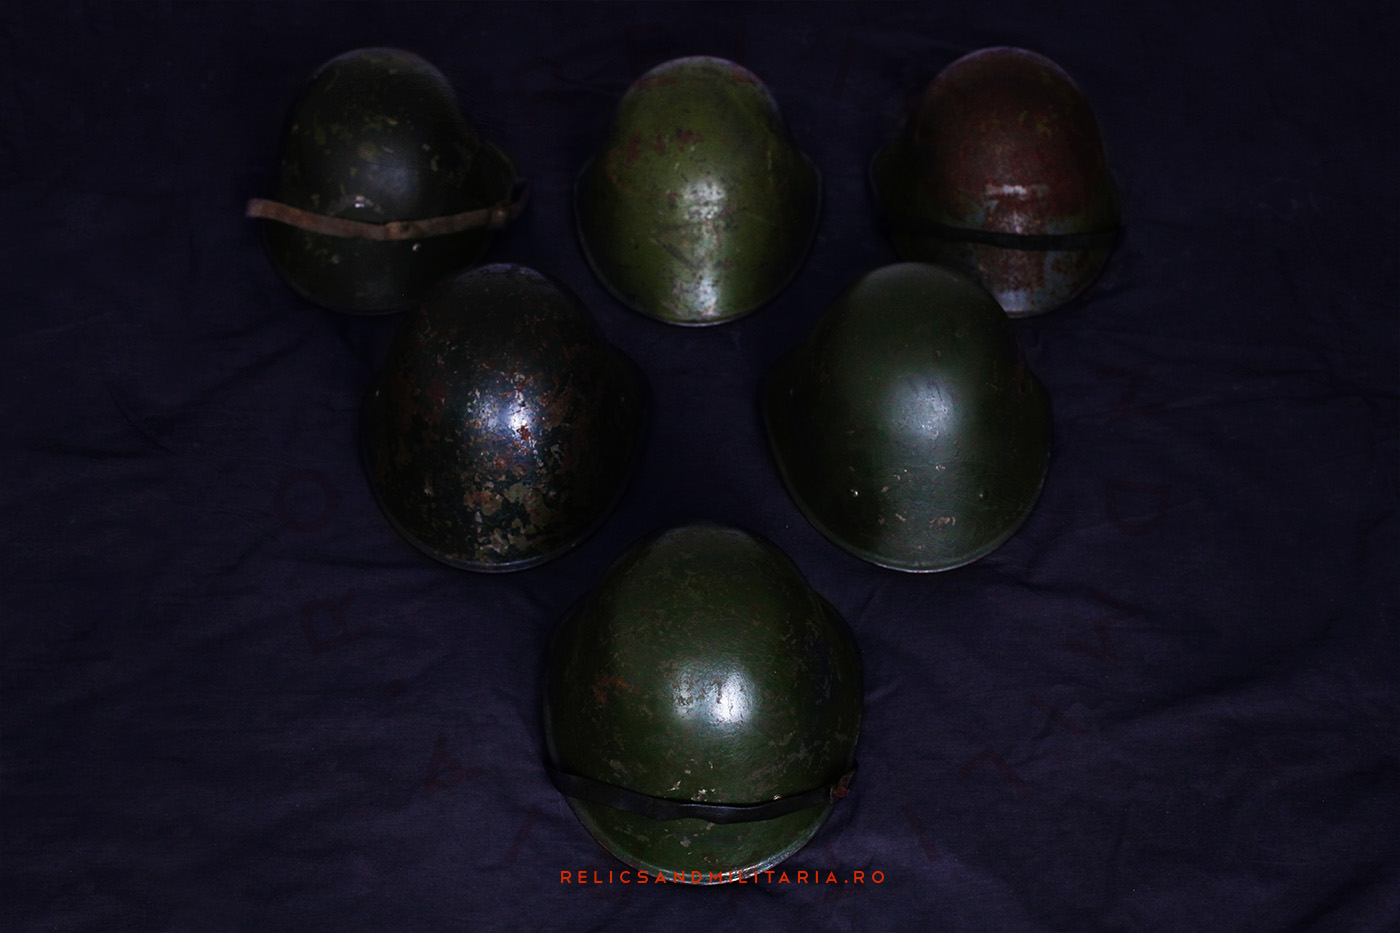 Dutch M34 steel helmet used by the Romanian Army in ww2